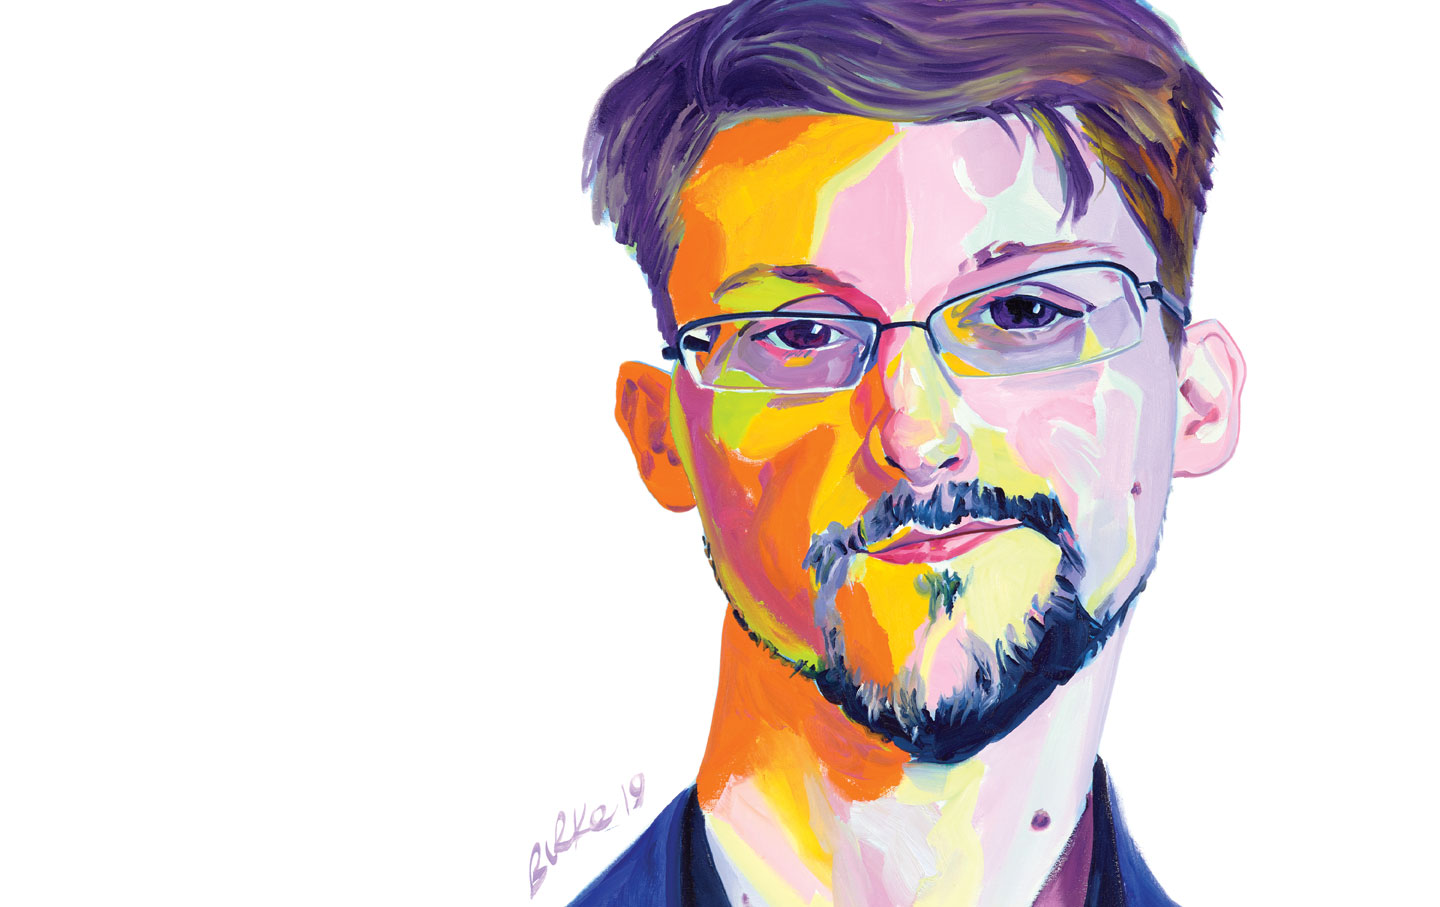 Exclusive: Edward Snowden's First Adventures in Cyberspace